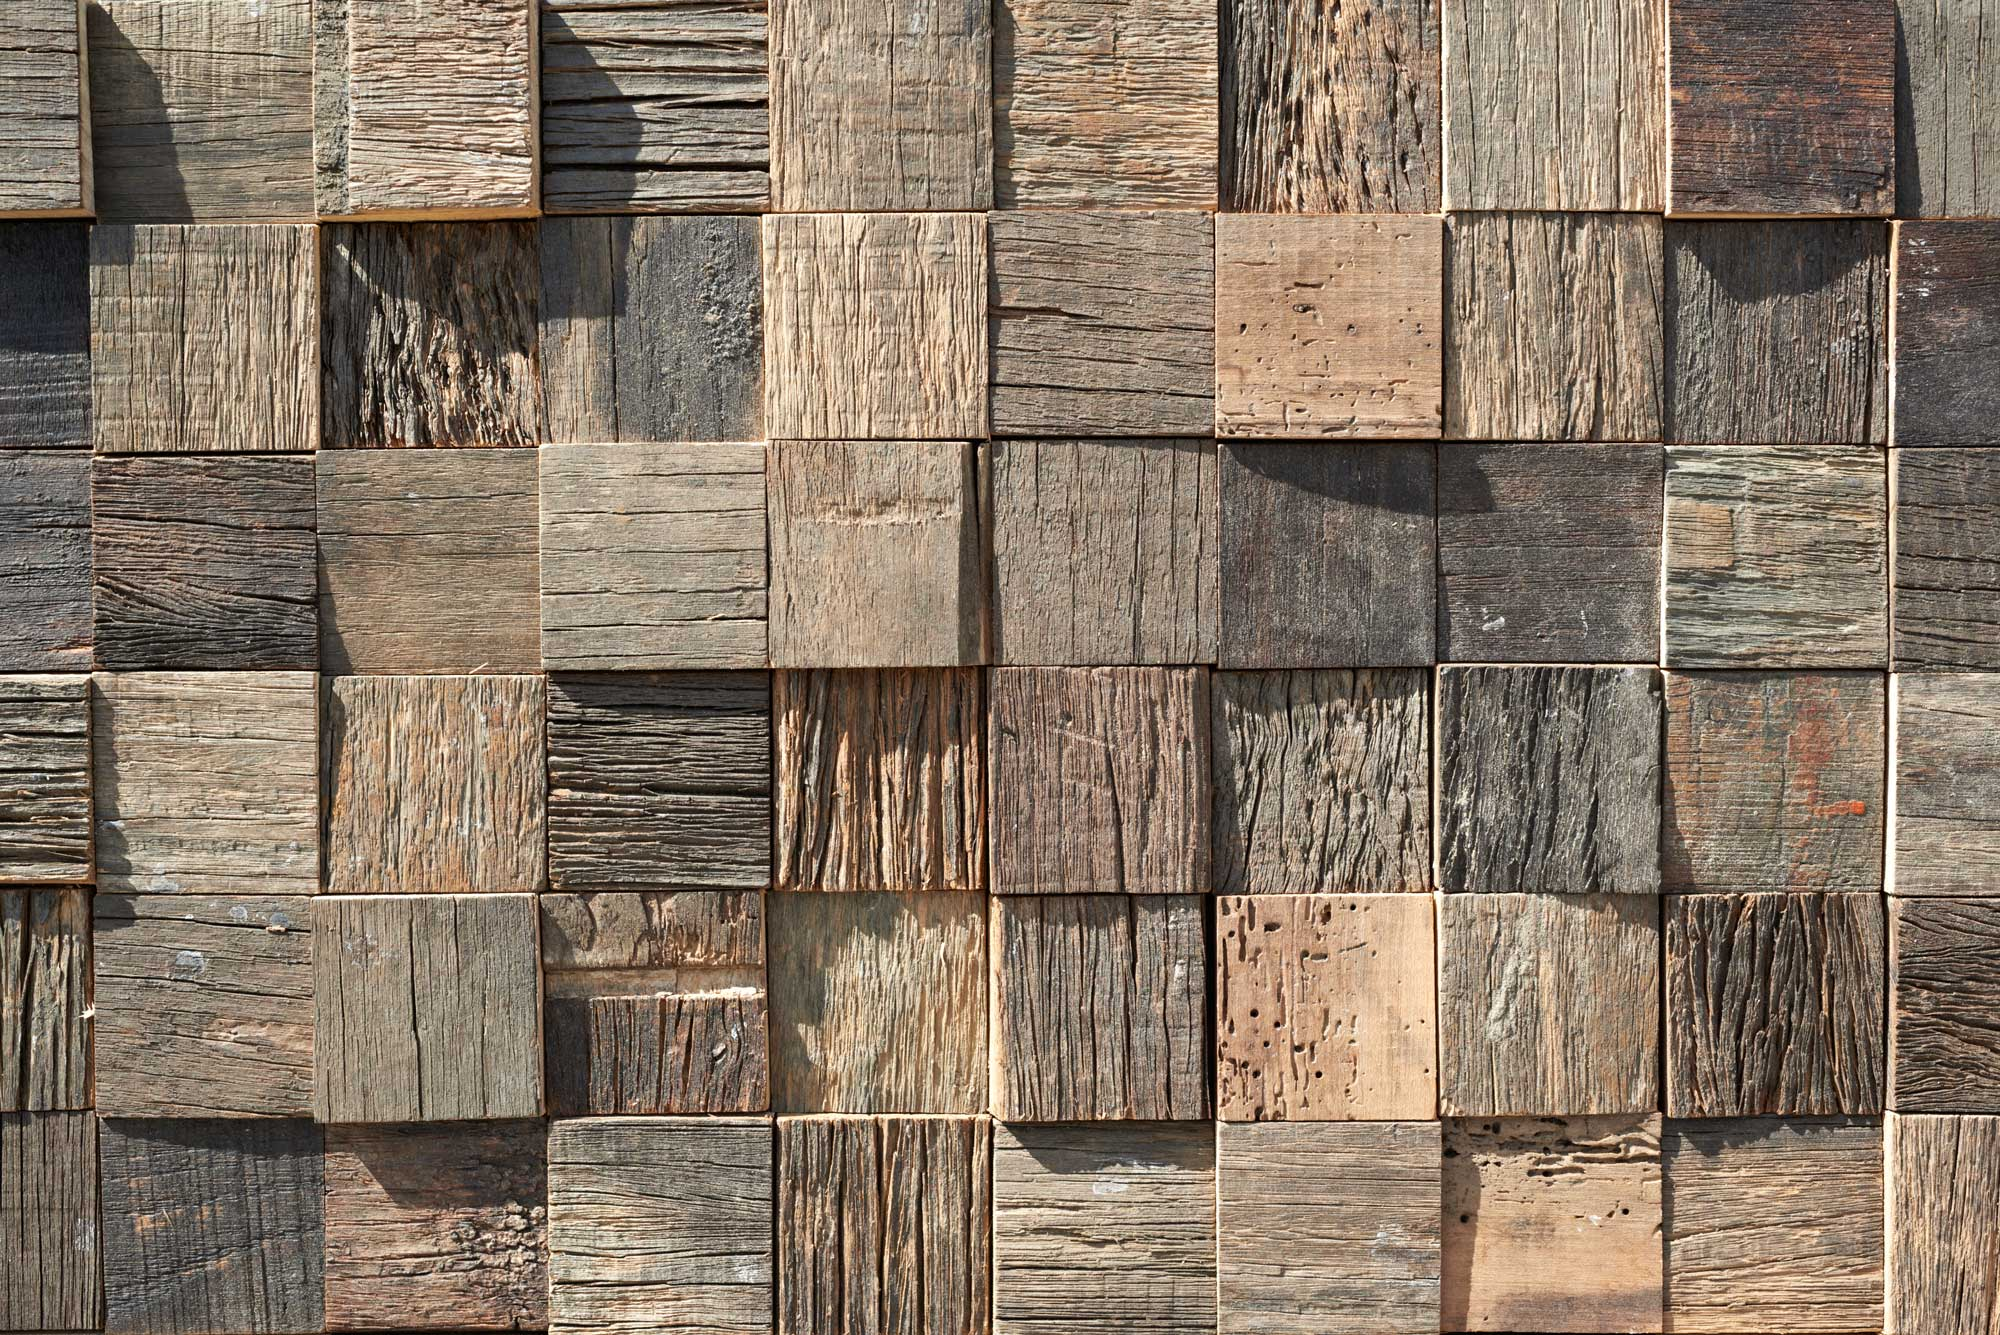 wandpaneele-holz-altes-fass-recycelt-square-dance